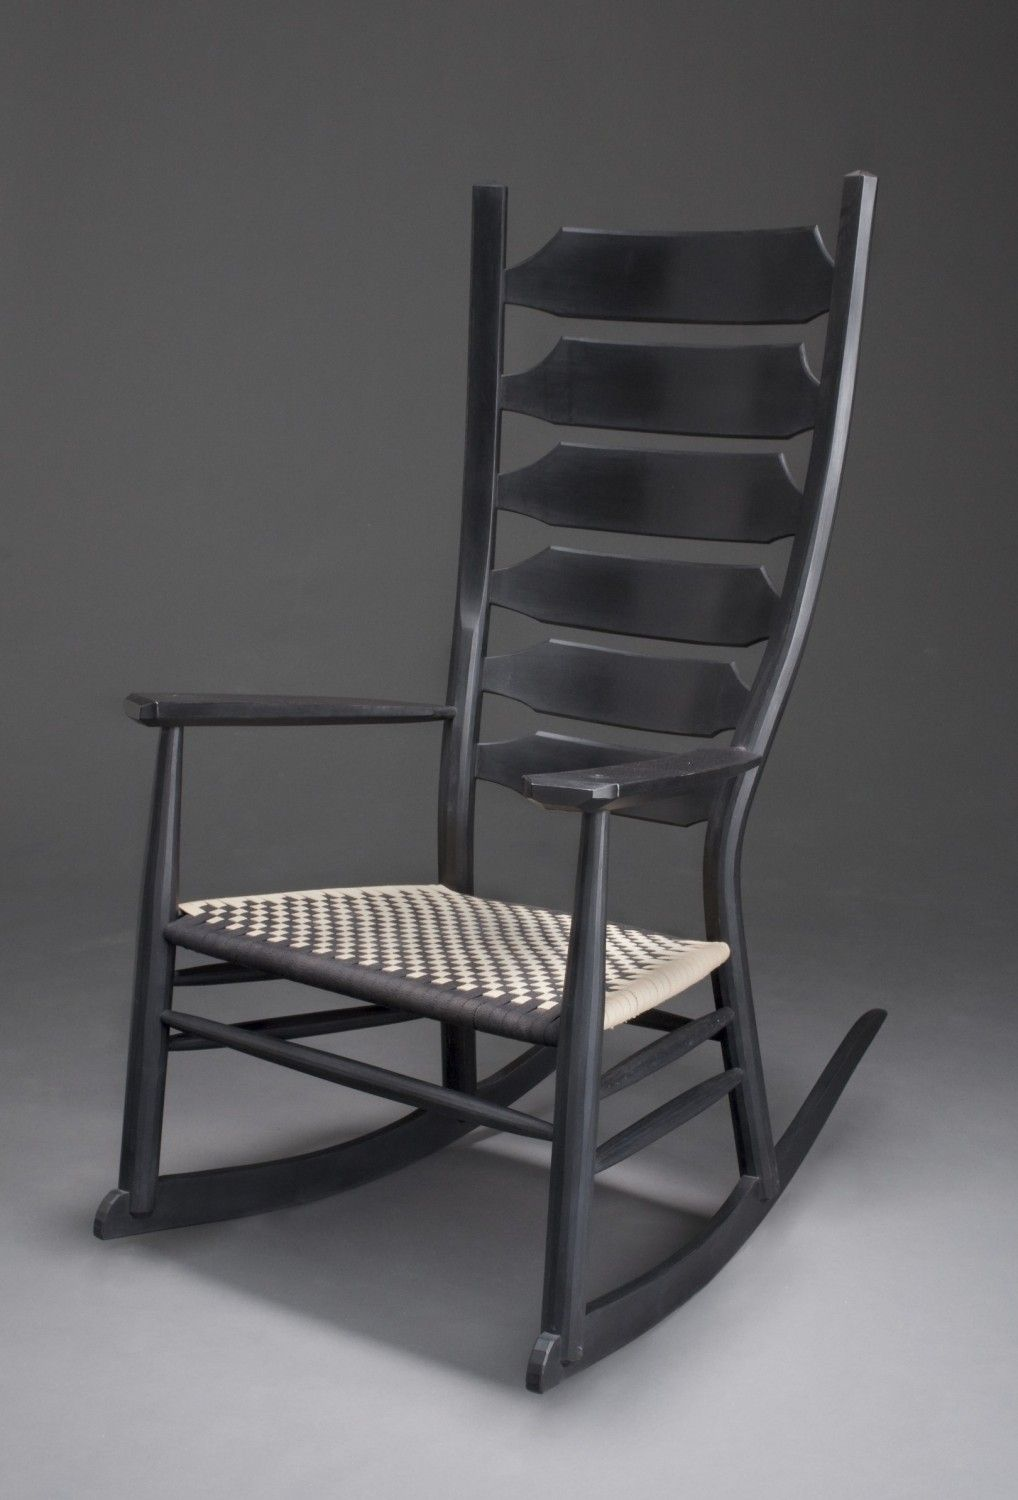 Greenwood Rocking Chair | Luxury, Handmade Chairs And Furniture | The Boggs  Collective By Brian